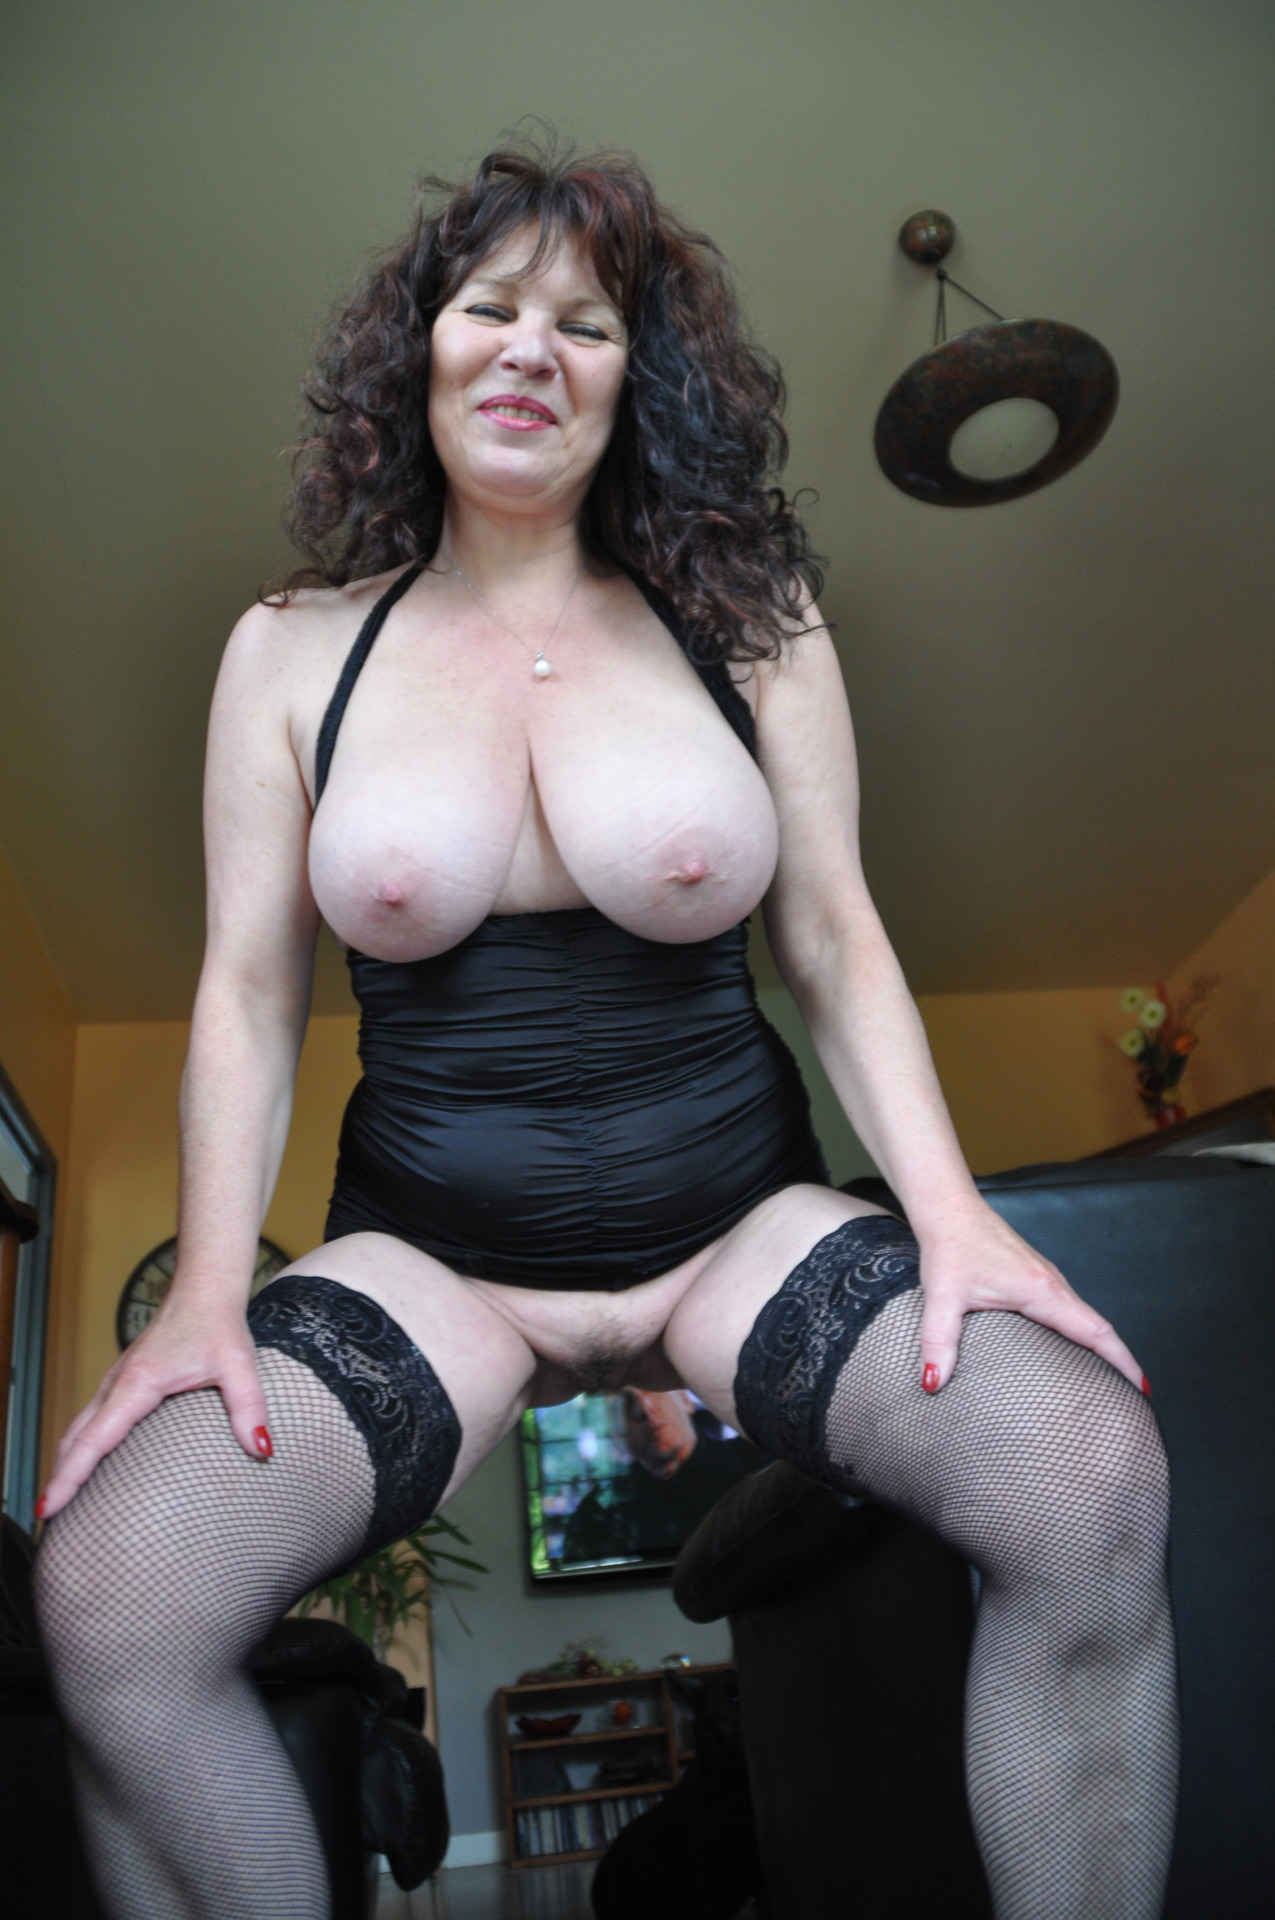 Casual Woman For Encounters 65 60 To Looking